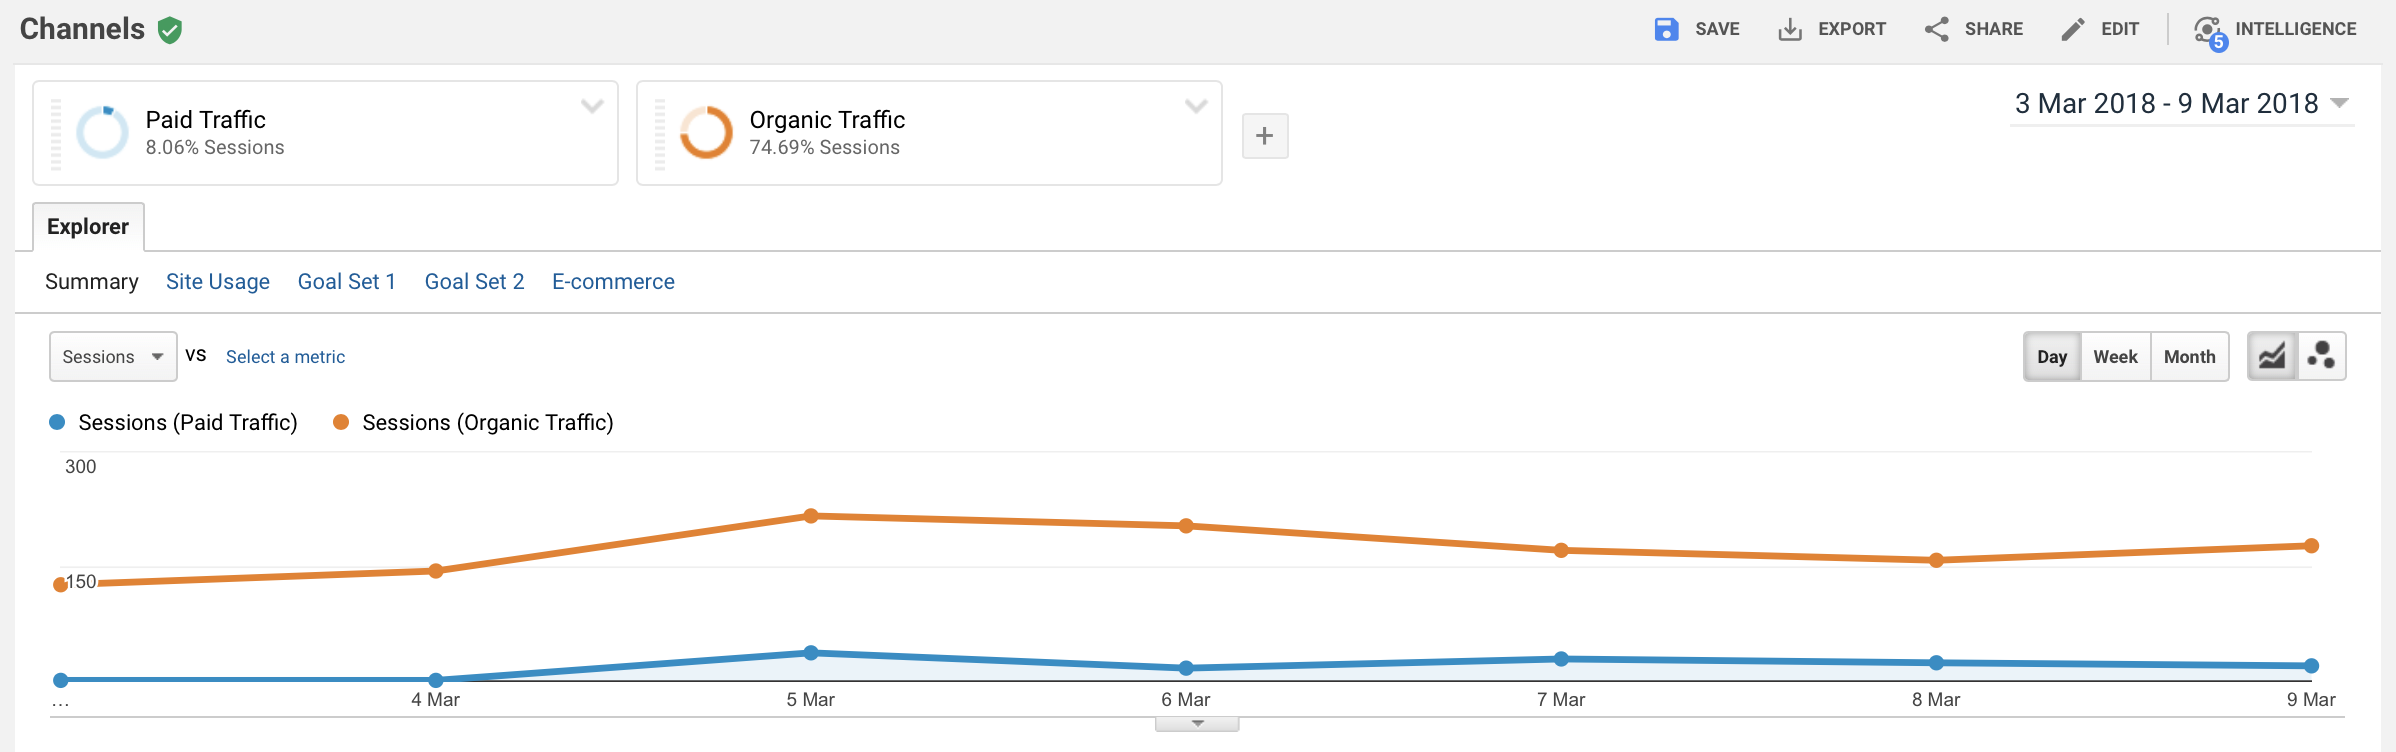 comparison of organic and paid traffic in google analytics, pie charts, and trend graph